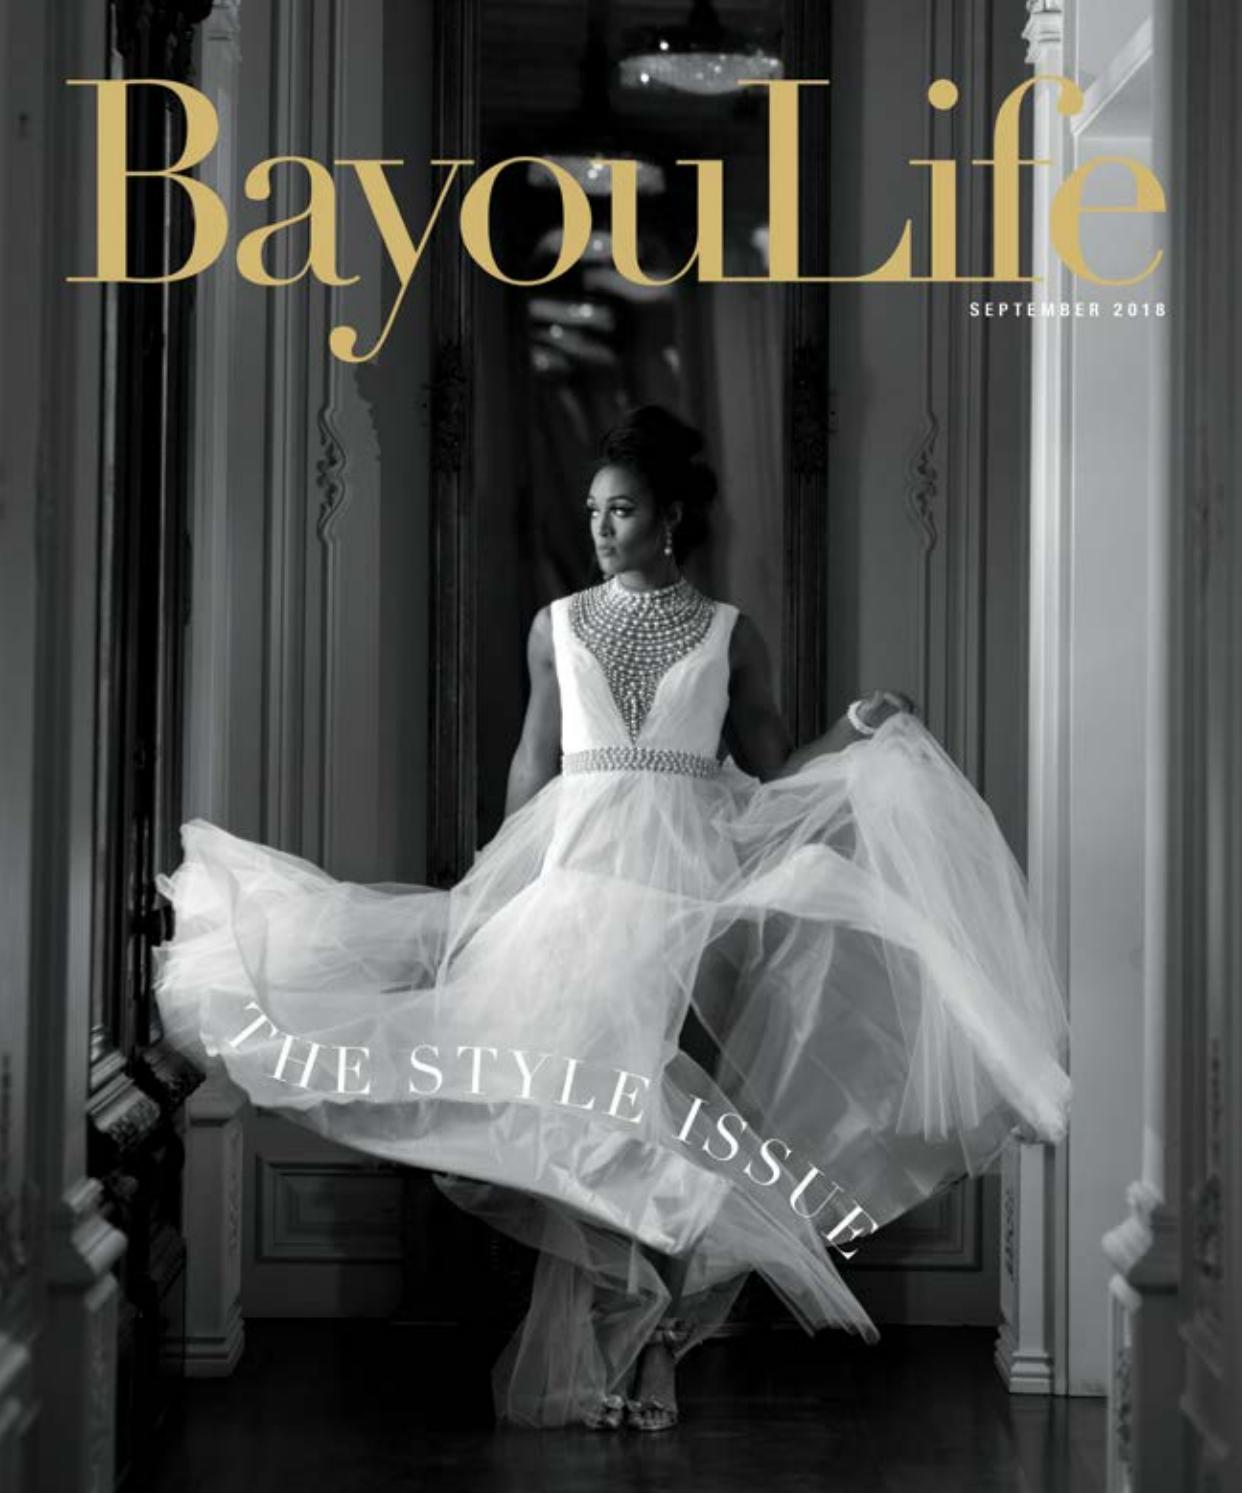 Bayoulife Magazine September 2018 By Issuu Tone Controls Are A Royal Pita As You Have Found Insertion Losses